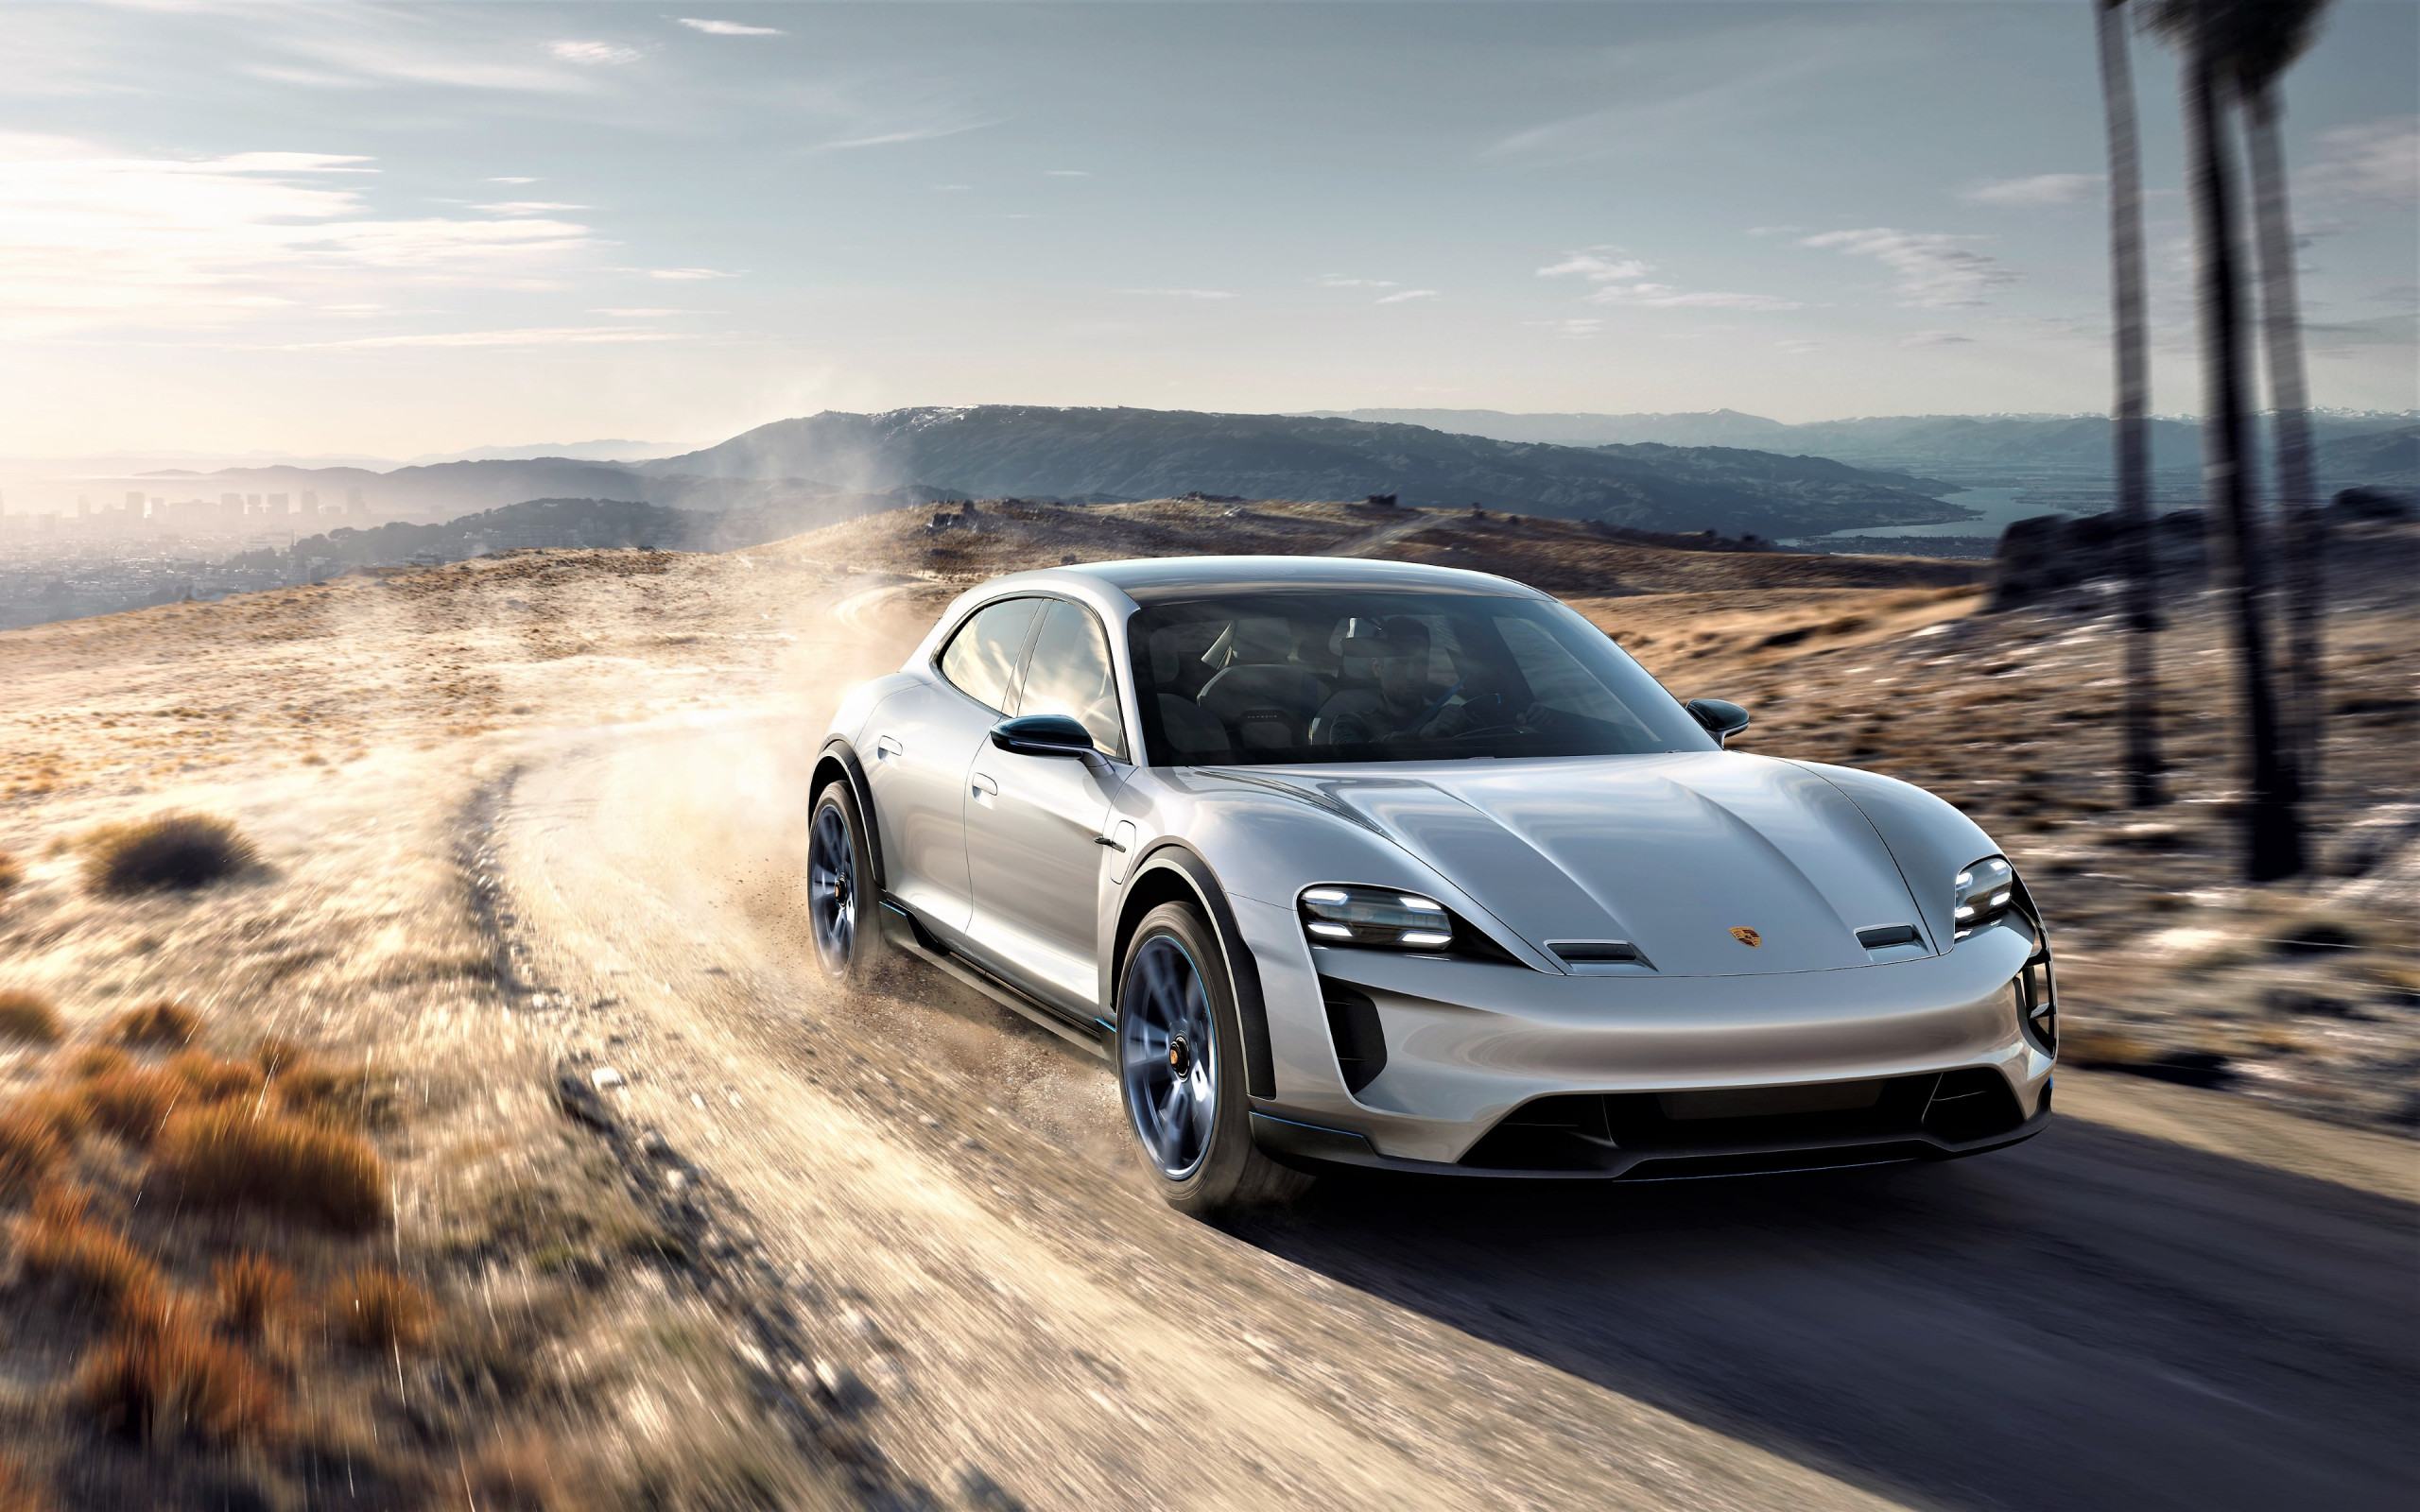 Porsche Mission E 2019 wallpaper 2560x1600